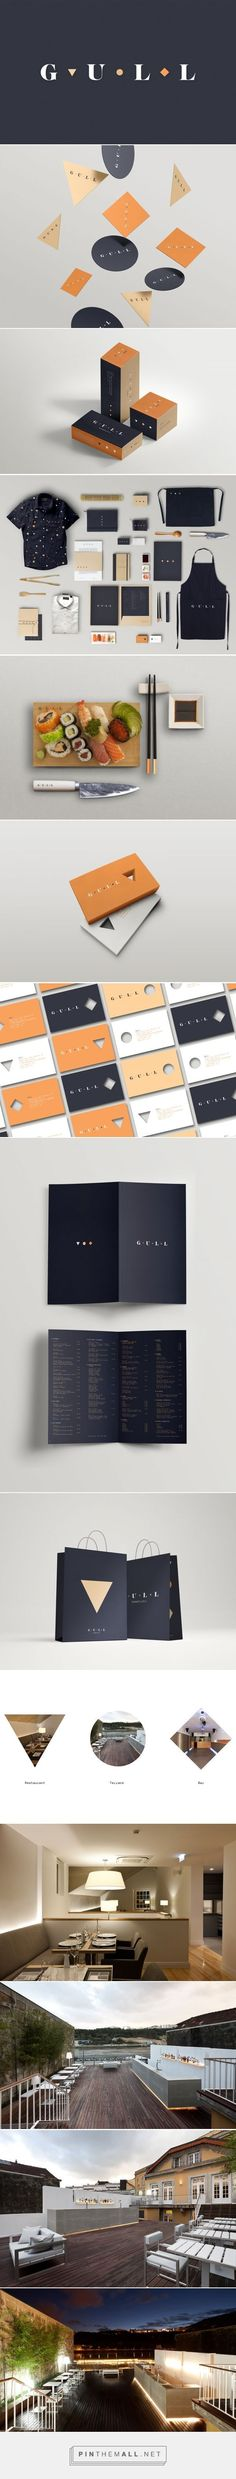 GULL Restaurant Branding and Menu Design by Volta | Fivestar Branding Agency – Design and Branding Agency & Curated Inspiration Gallery